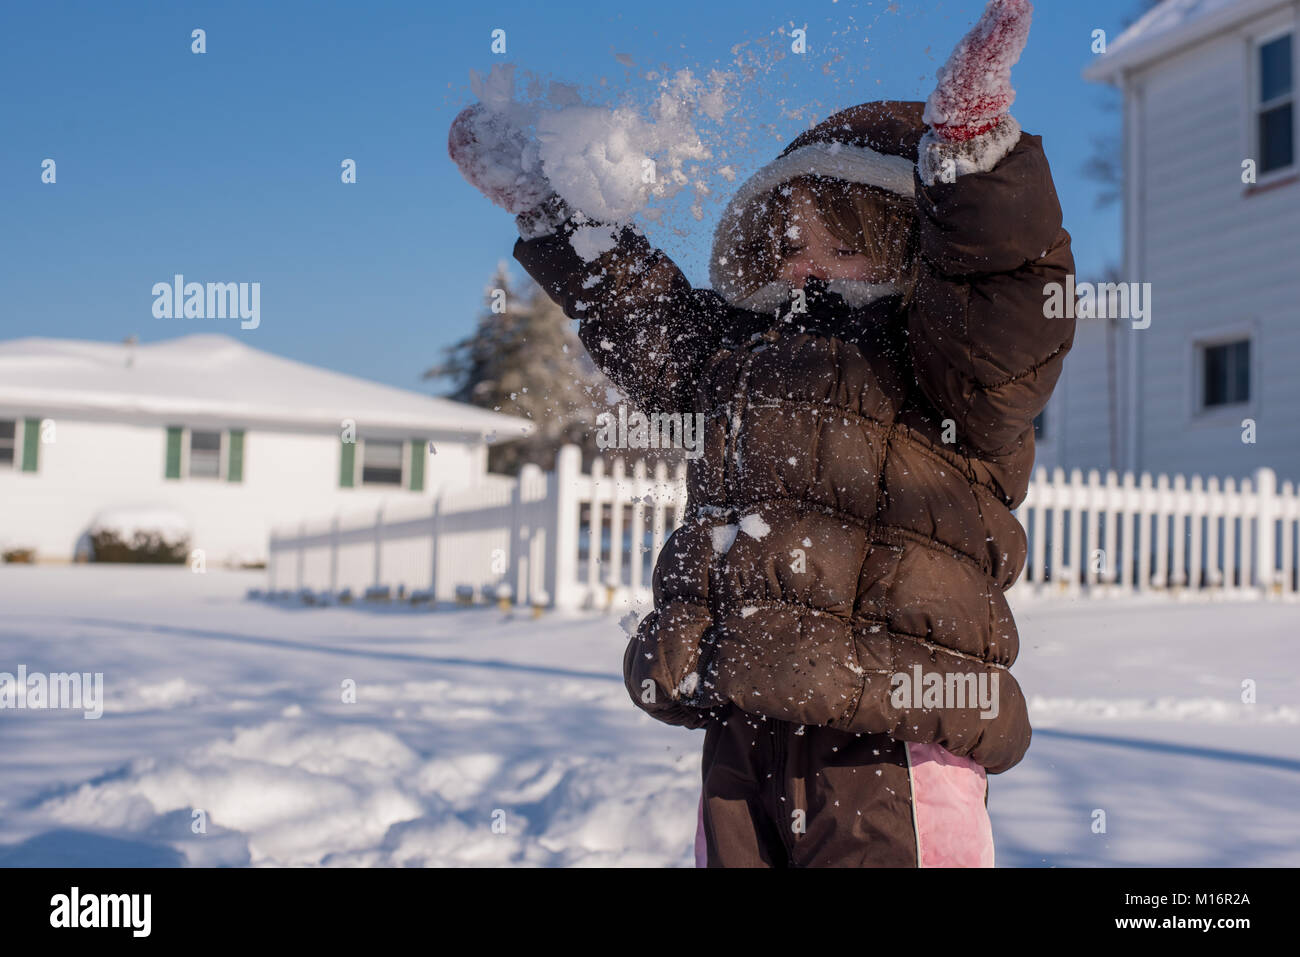 A 3-year old child throws snow up in the air on winter day in the United States. - Stock Image